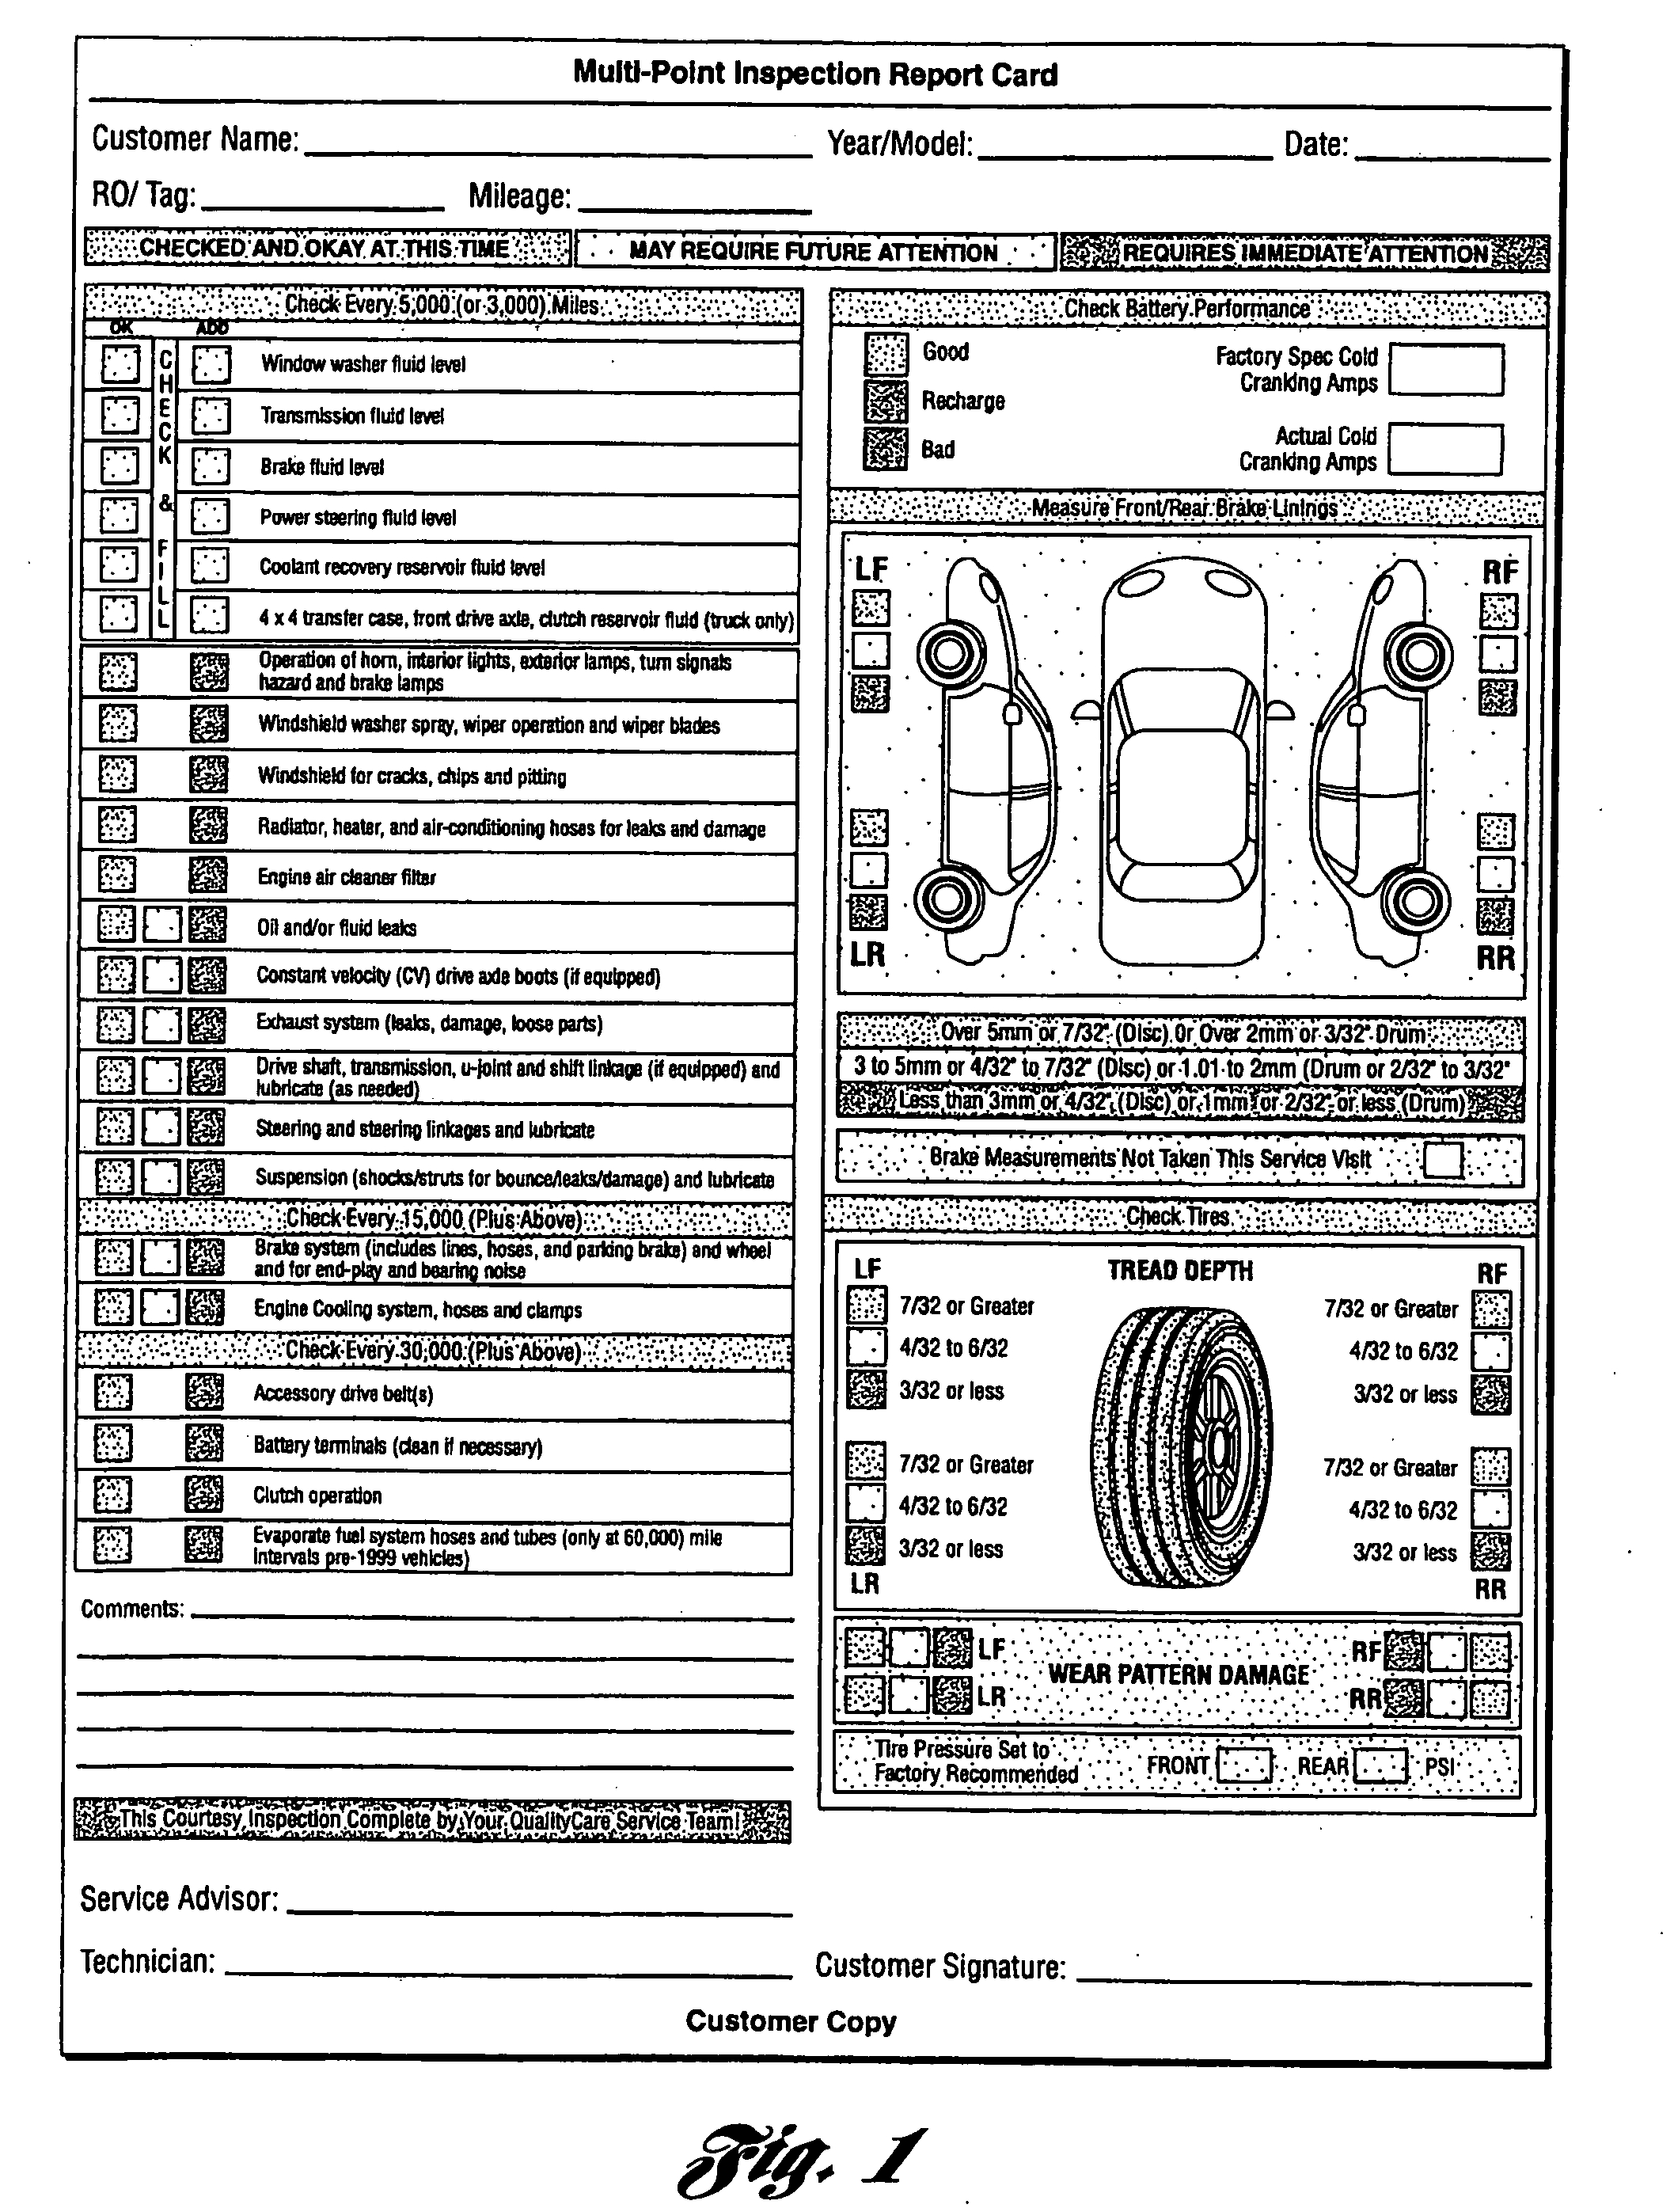 Multipoint Inspection Report Card As Recommendedford Motor Pertaining To Vehicle Inspection Report Template